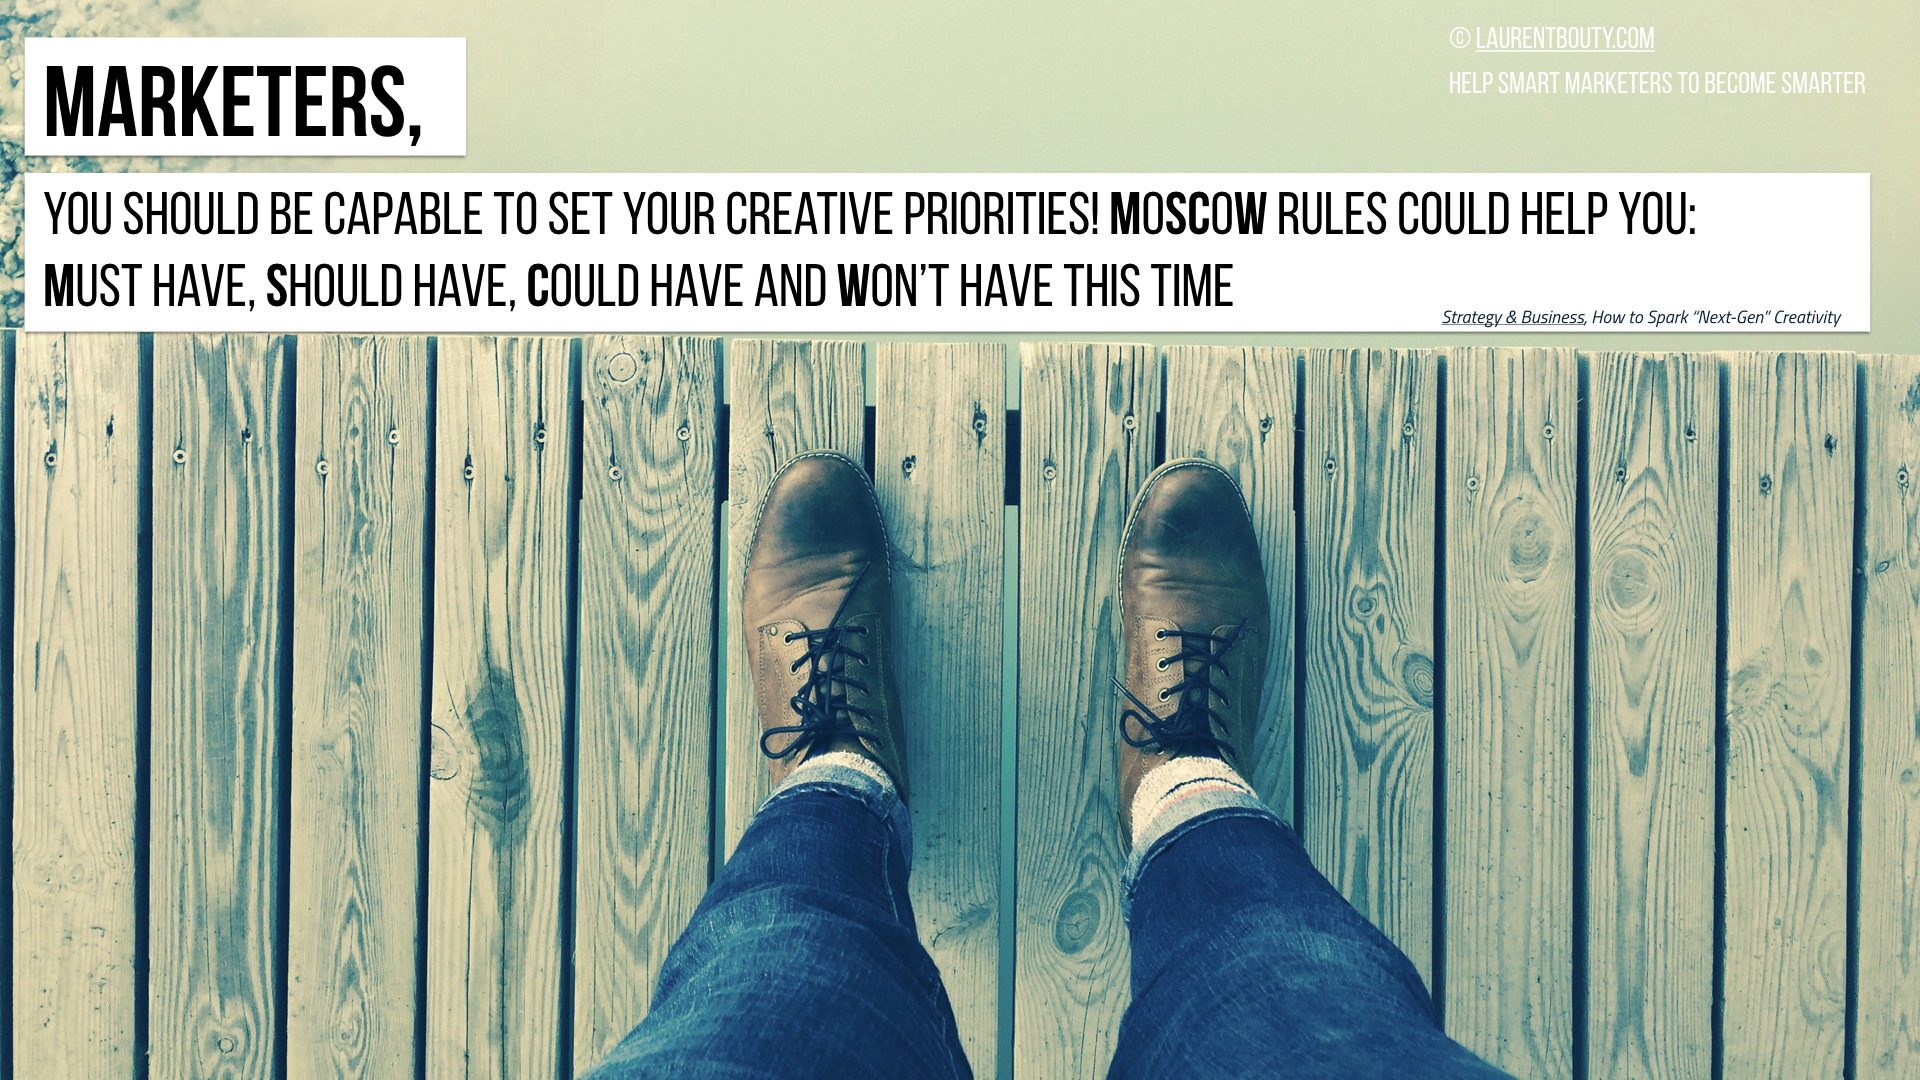 Marketers, you should set your creative priorities